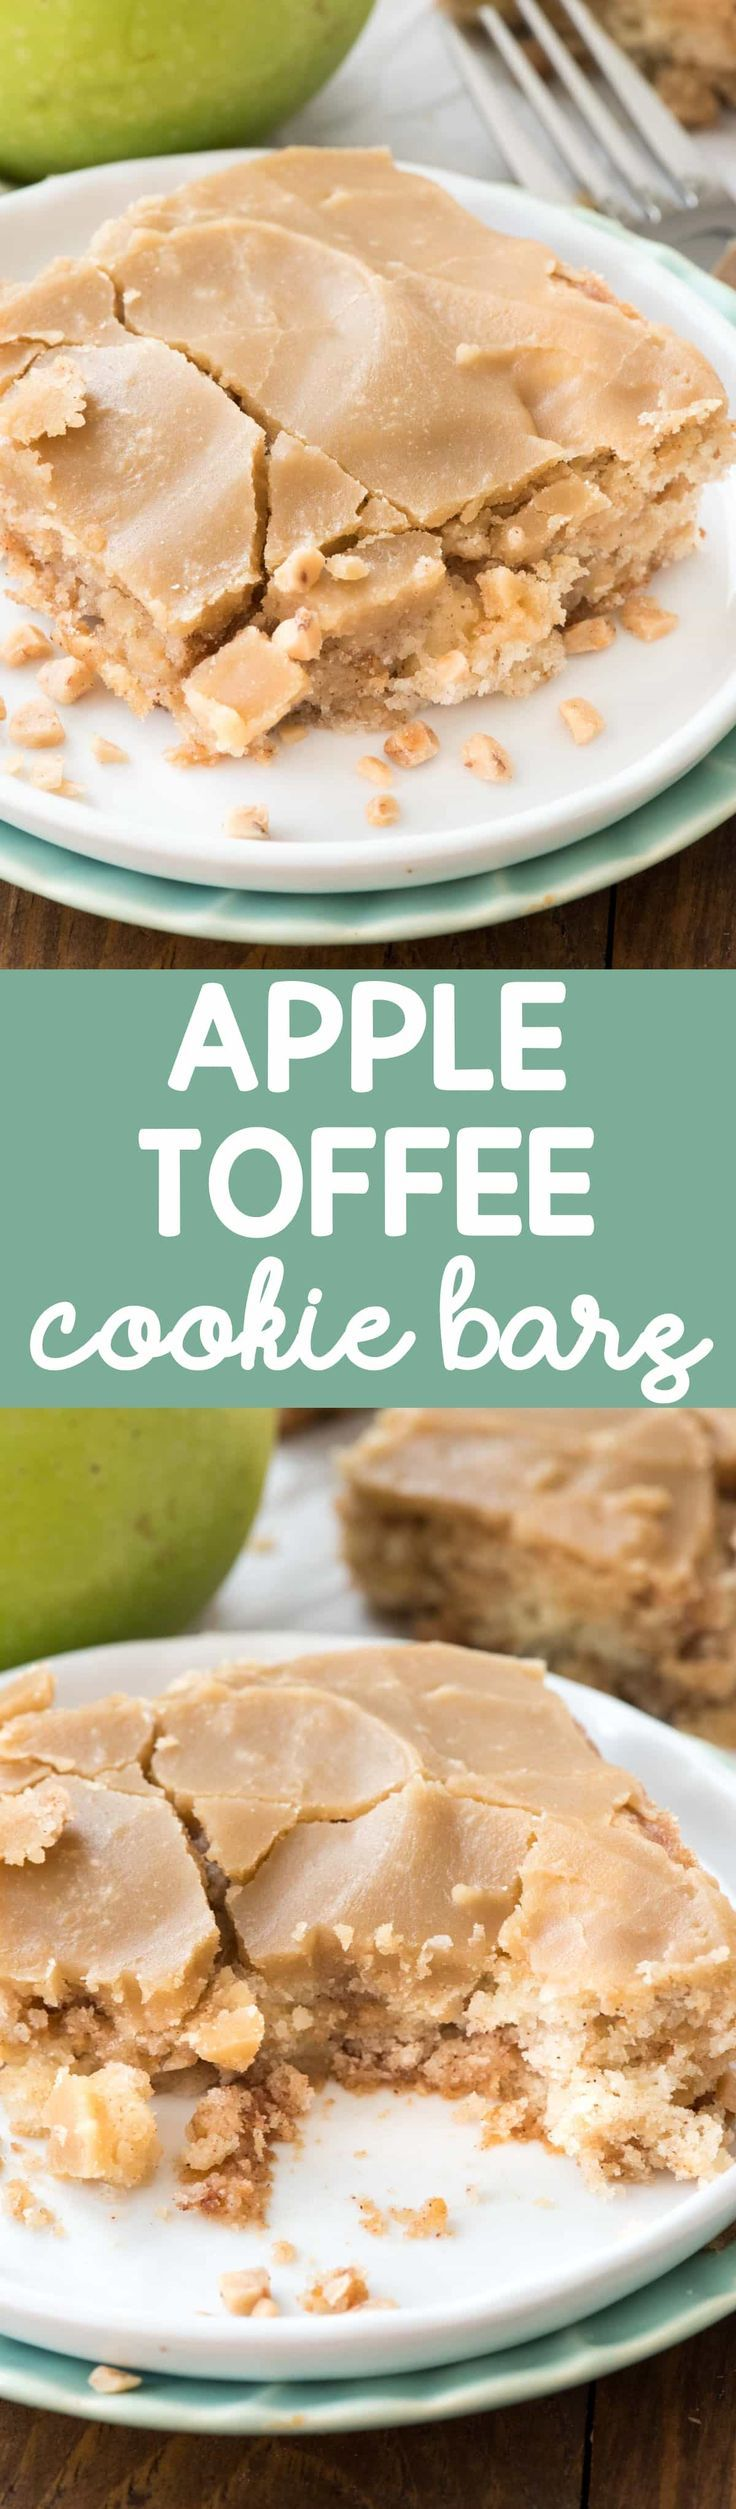 Apple Toffee Bars are made with sugar cookie dough and tons of apples and toffee bits. Then you pour on a brown sugar caramel frosting that makes them one of the best fall dessert recipes EVER!